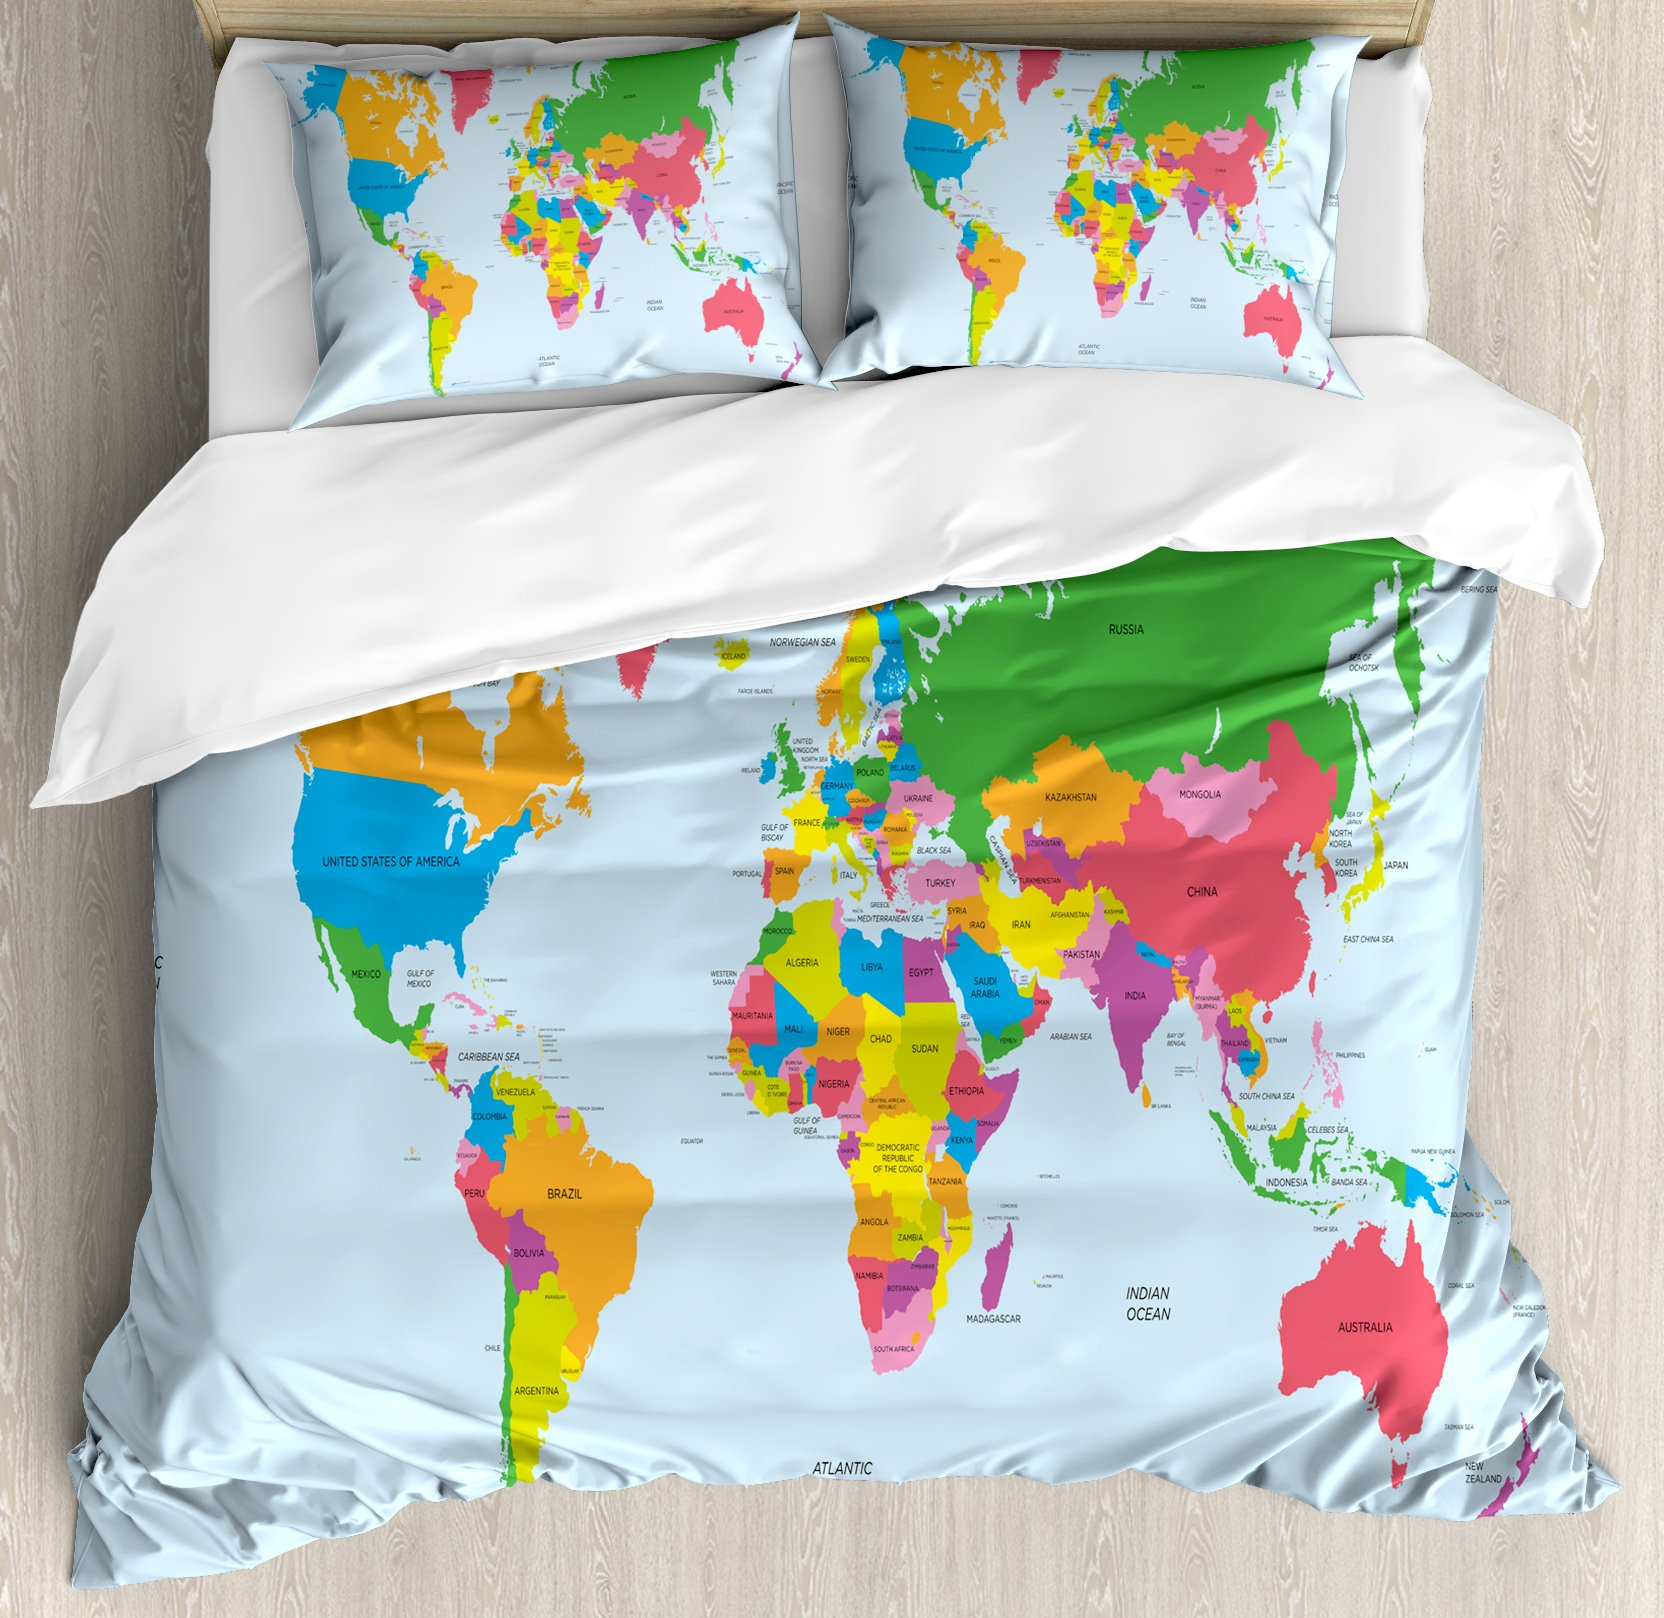 Map Queen Size Duvet Cover Set by Ambesonne, Classical Colorful Map of World in Political Style Travel Europe America Asia Africa, Decorative 3 Piece Bedding Set with 2 Pillow Shams, Multicolor by Ambesonne